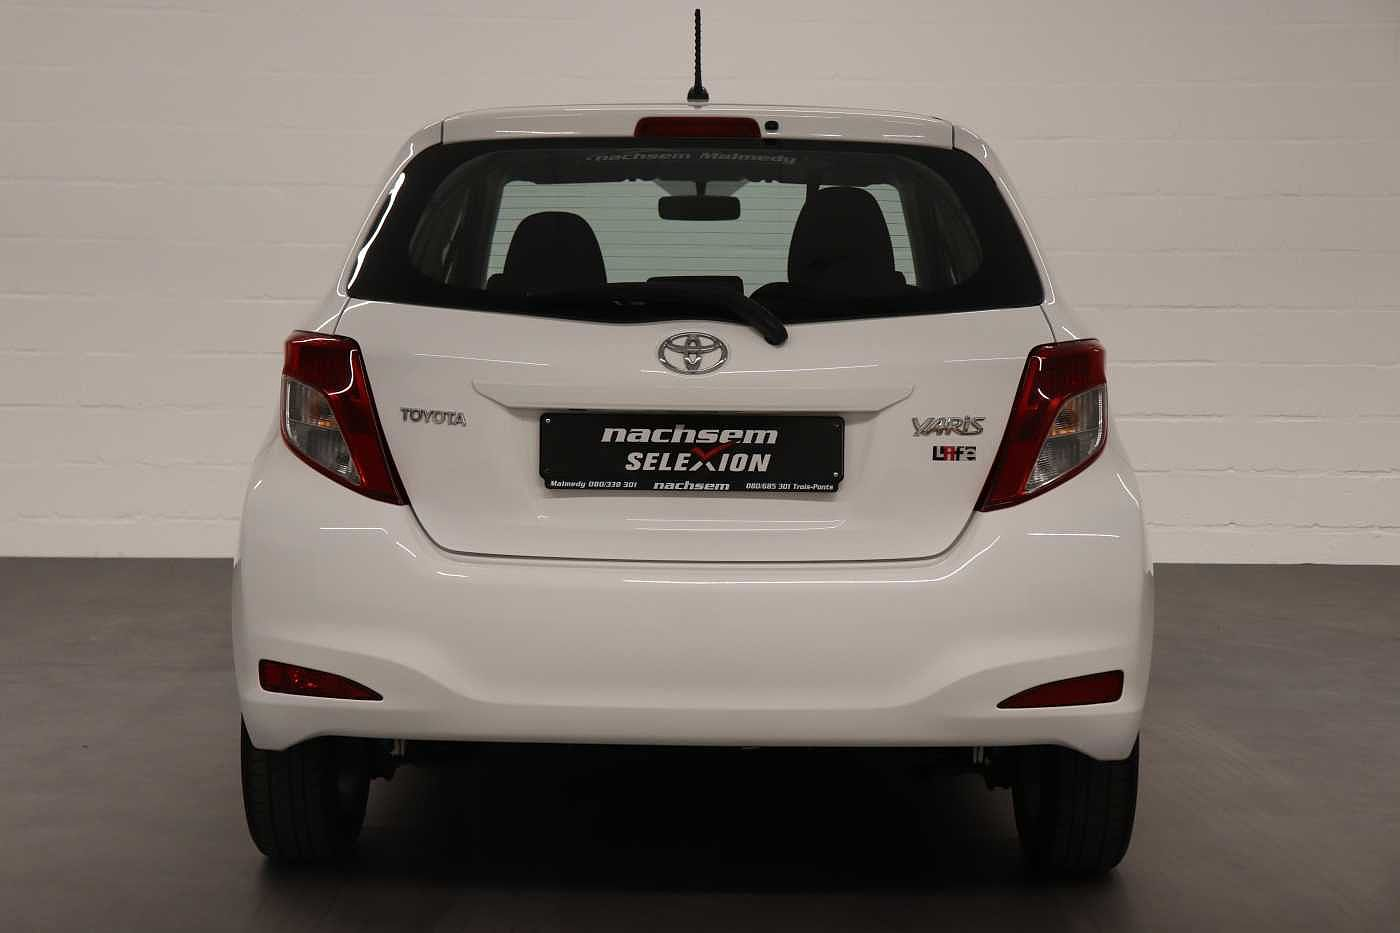 Toyota Yaris 1.4 D-4D 6MT - photo 9